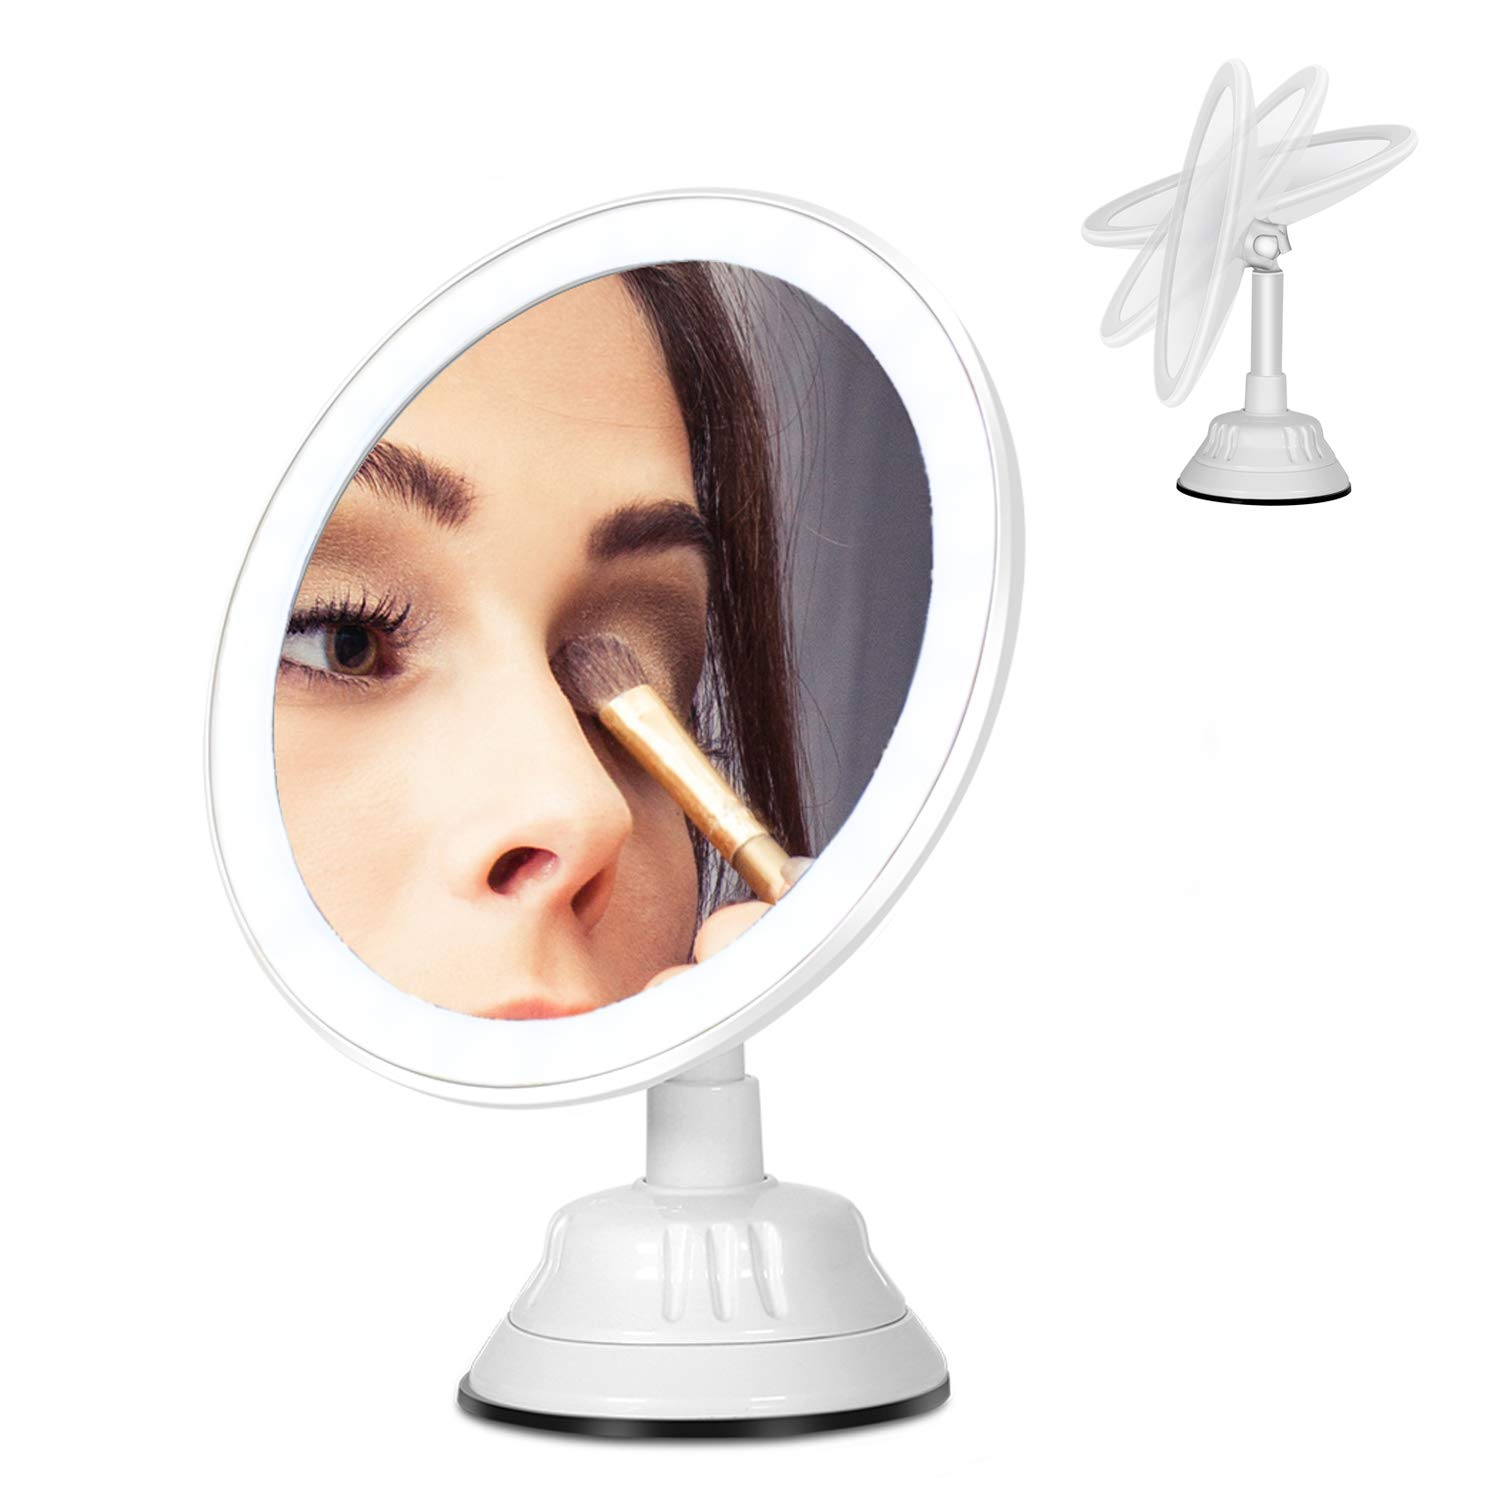 Miroir de maquillage, 7X grossissant miroir de maquillage LED, 360 degré de rotation, avec ventouse base, interface de chargement USB, 3 niveaux de LED réglage de la lumière naturelle, portable, amovible TONGYANG